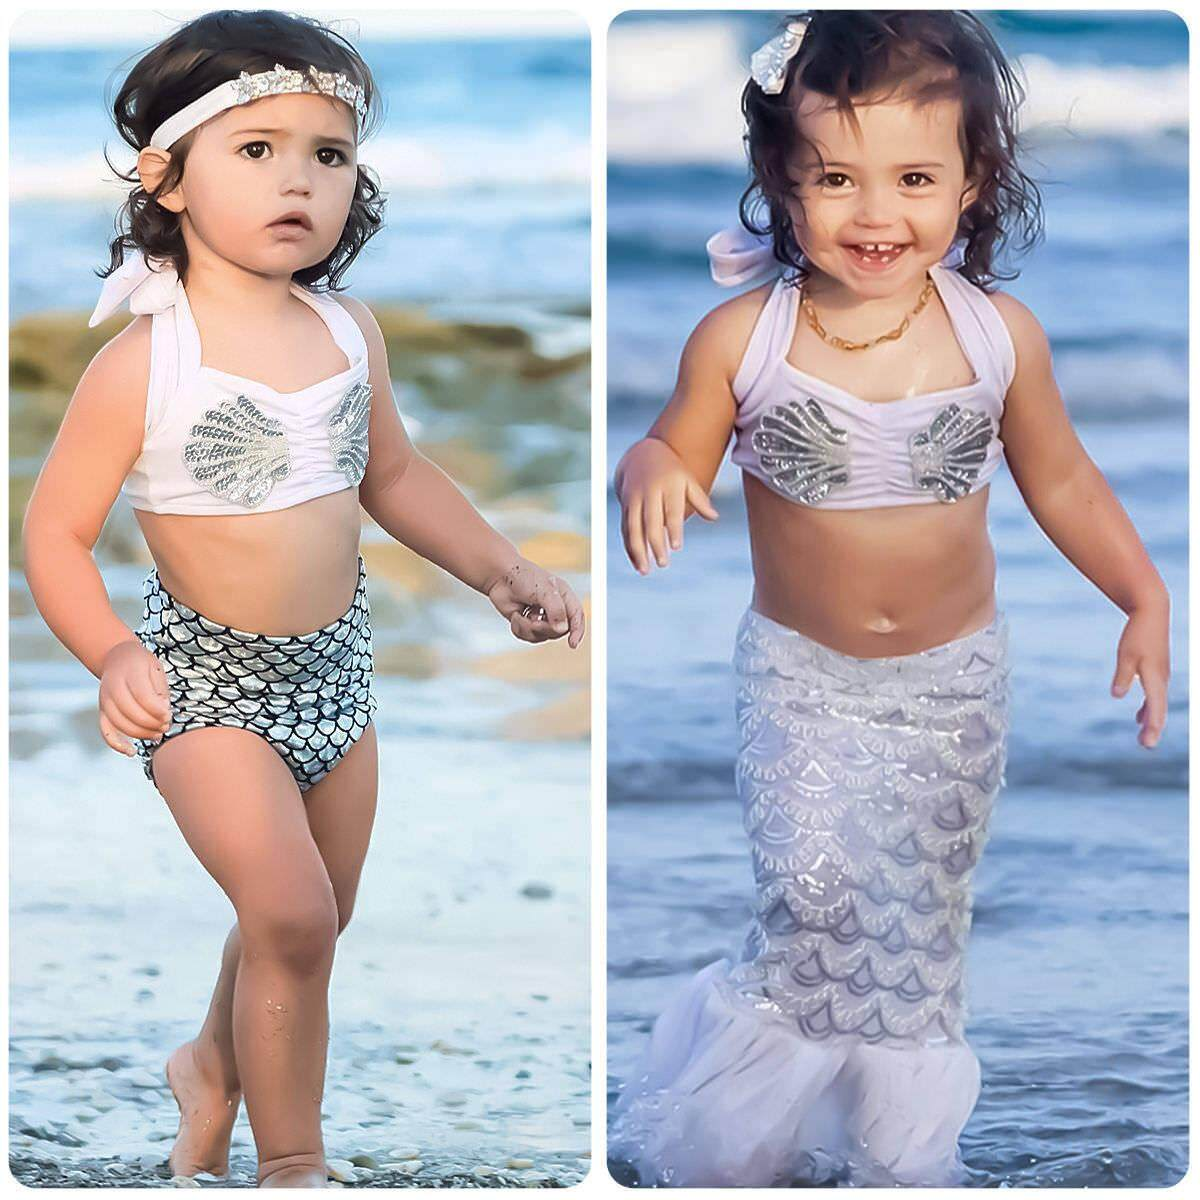 Cute Kids Baby Girl Fish Scales Mermaid Swimwear Swimsuit Bathing Suit Beachwear By Mm88 Store.